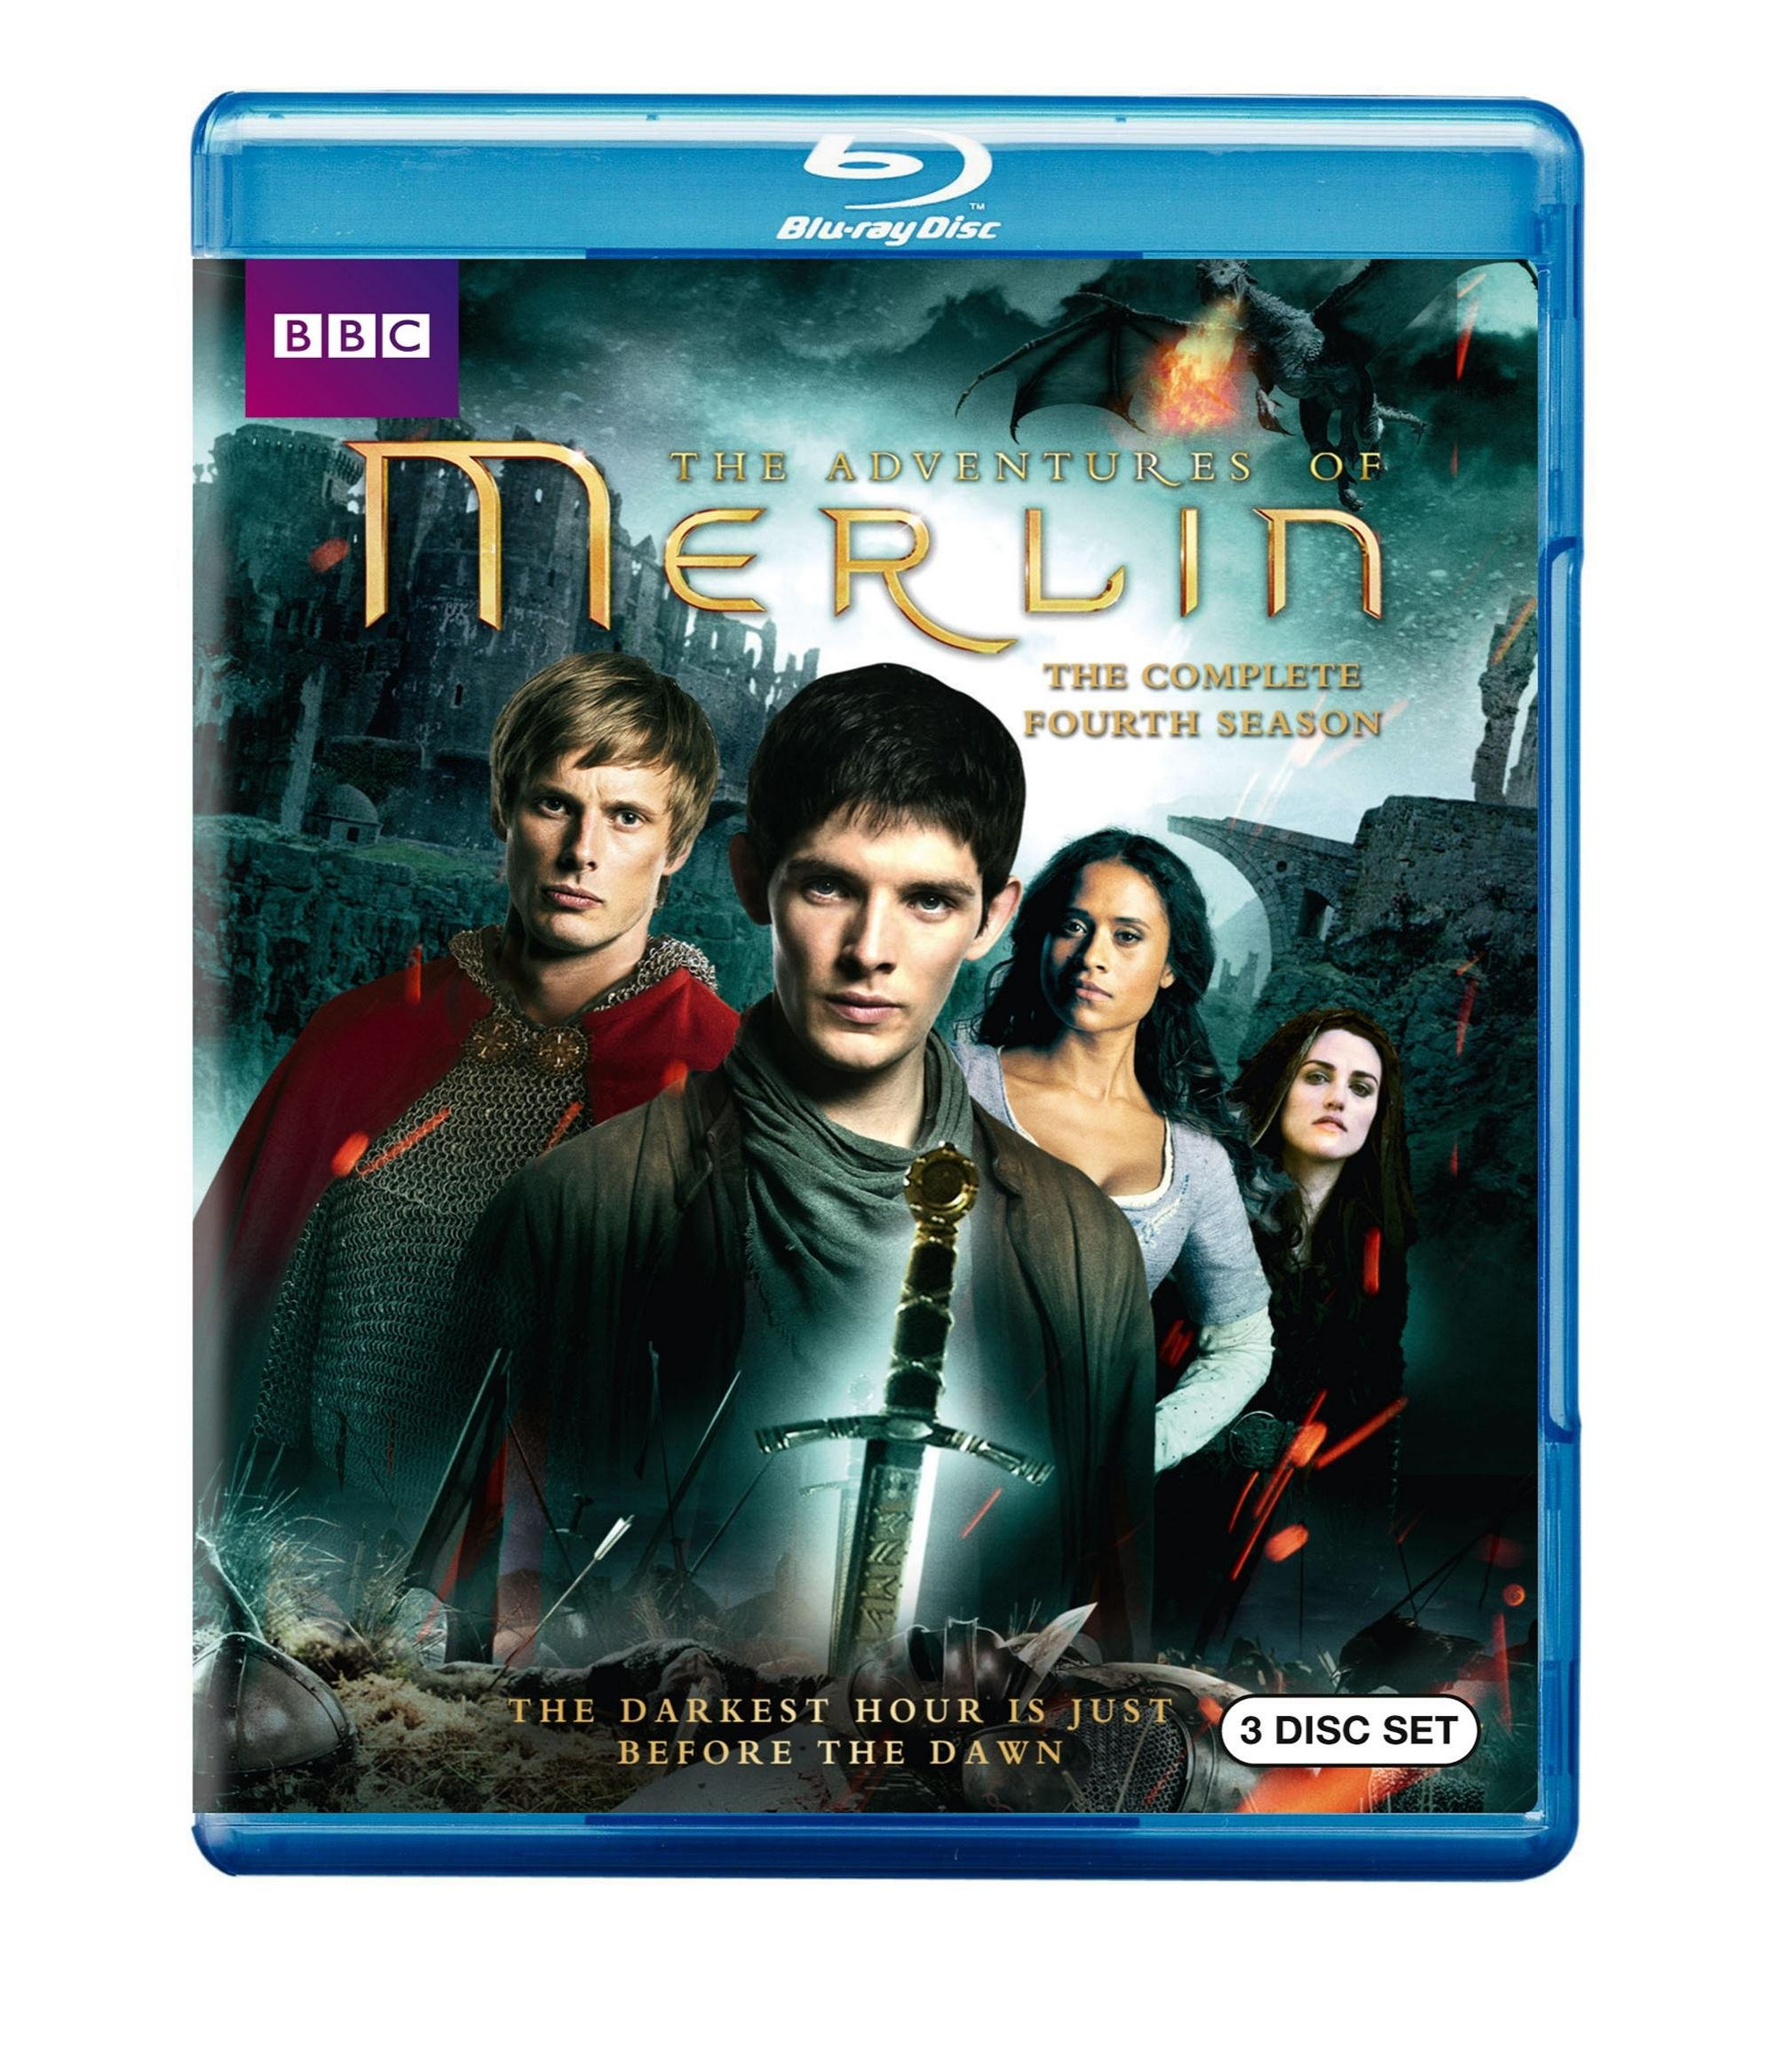 Blu-ray : Merlin: The Complete Fourth Season (Slipsleeve Packaging, Widescreen, 3 Pack, 3 Disc)